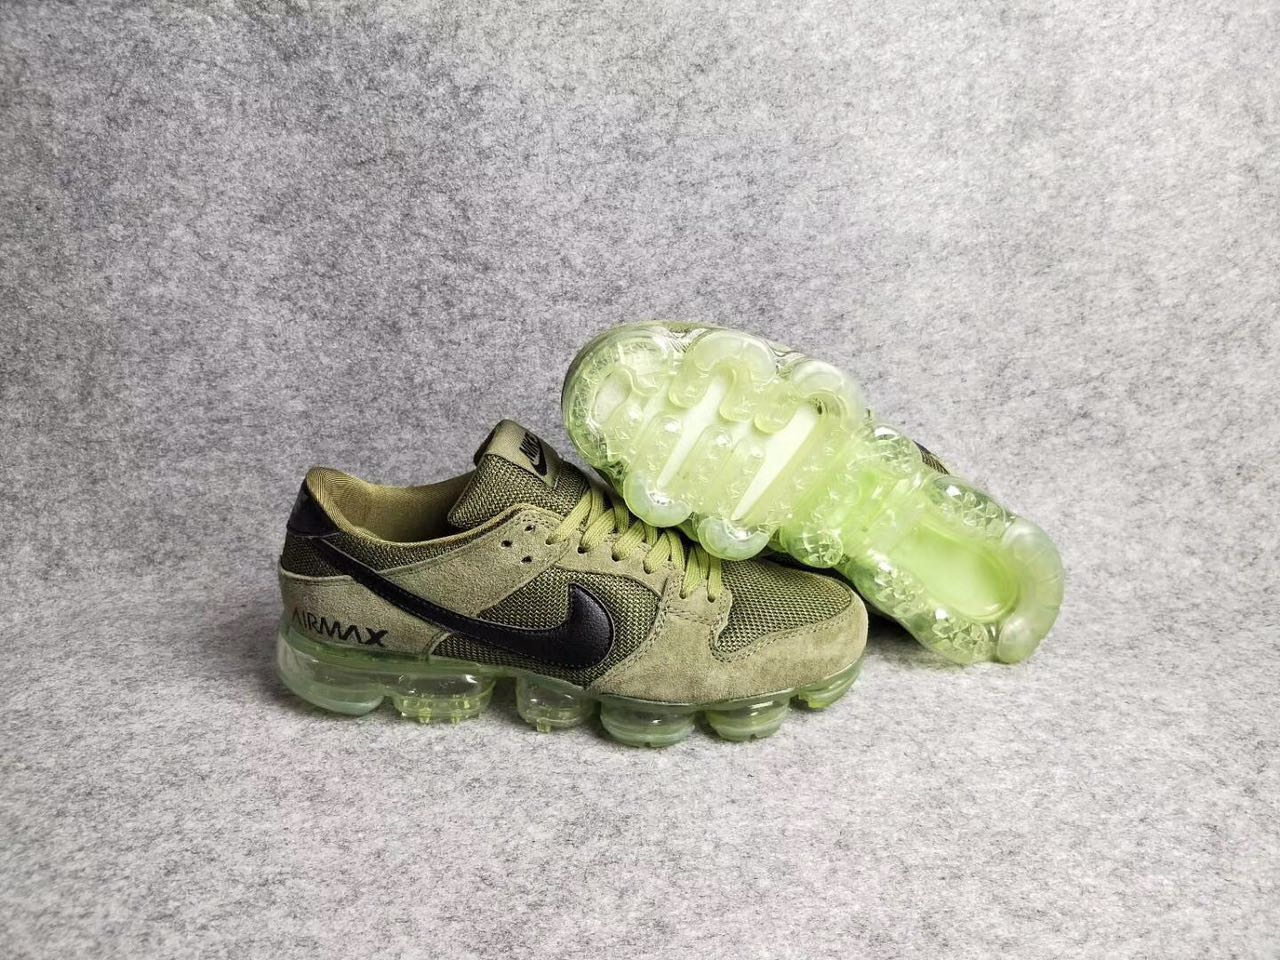 New Nike Air Max 2018 Army Green Black Shoes